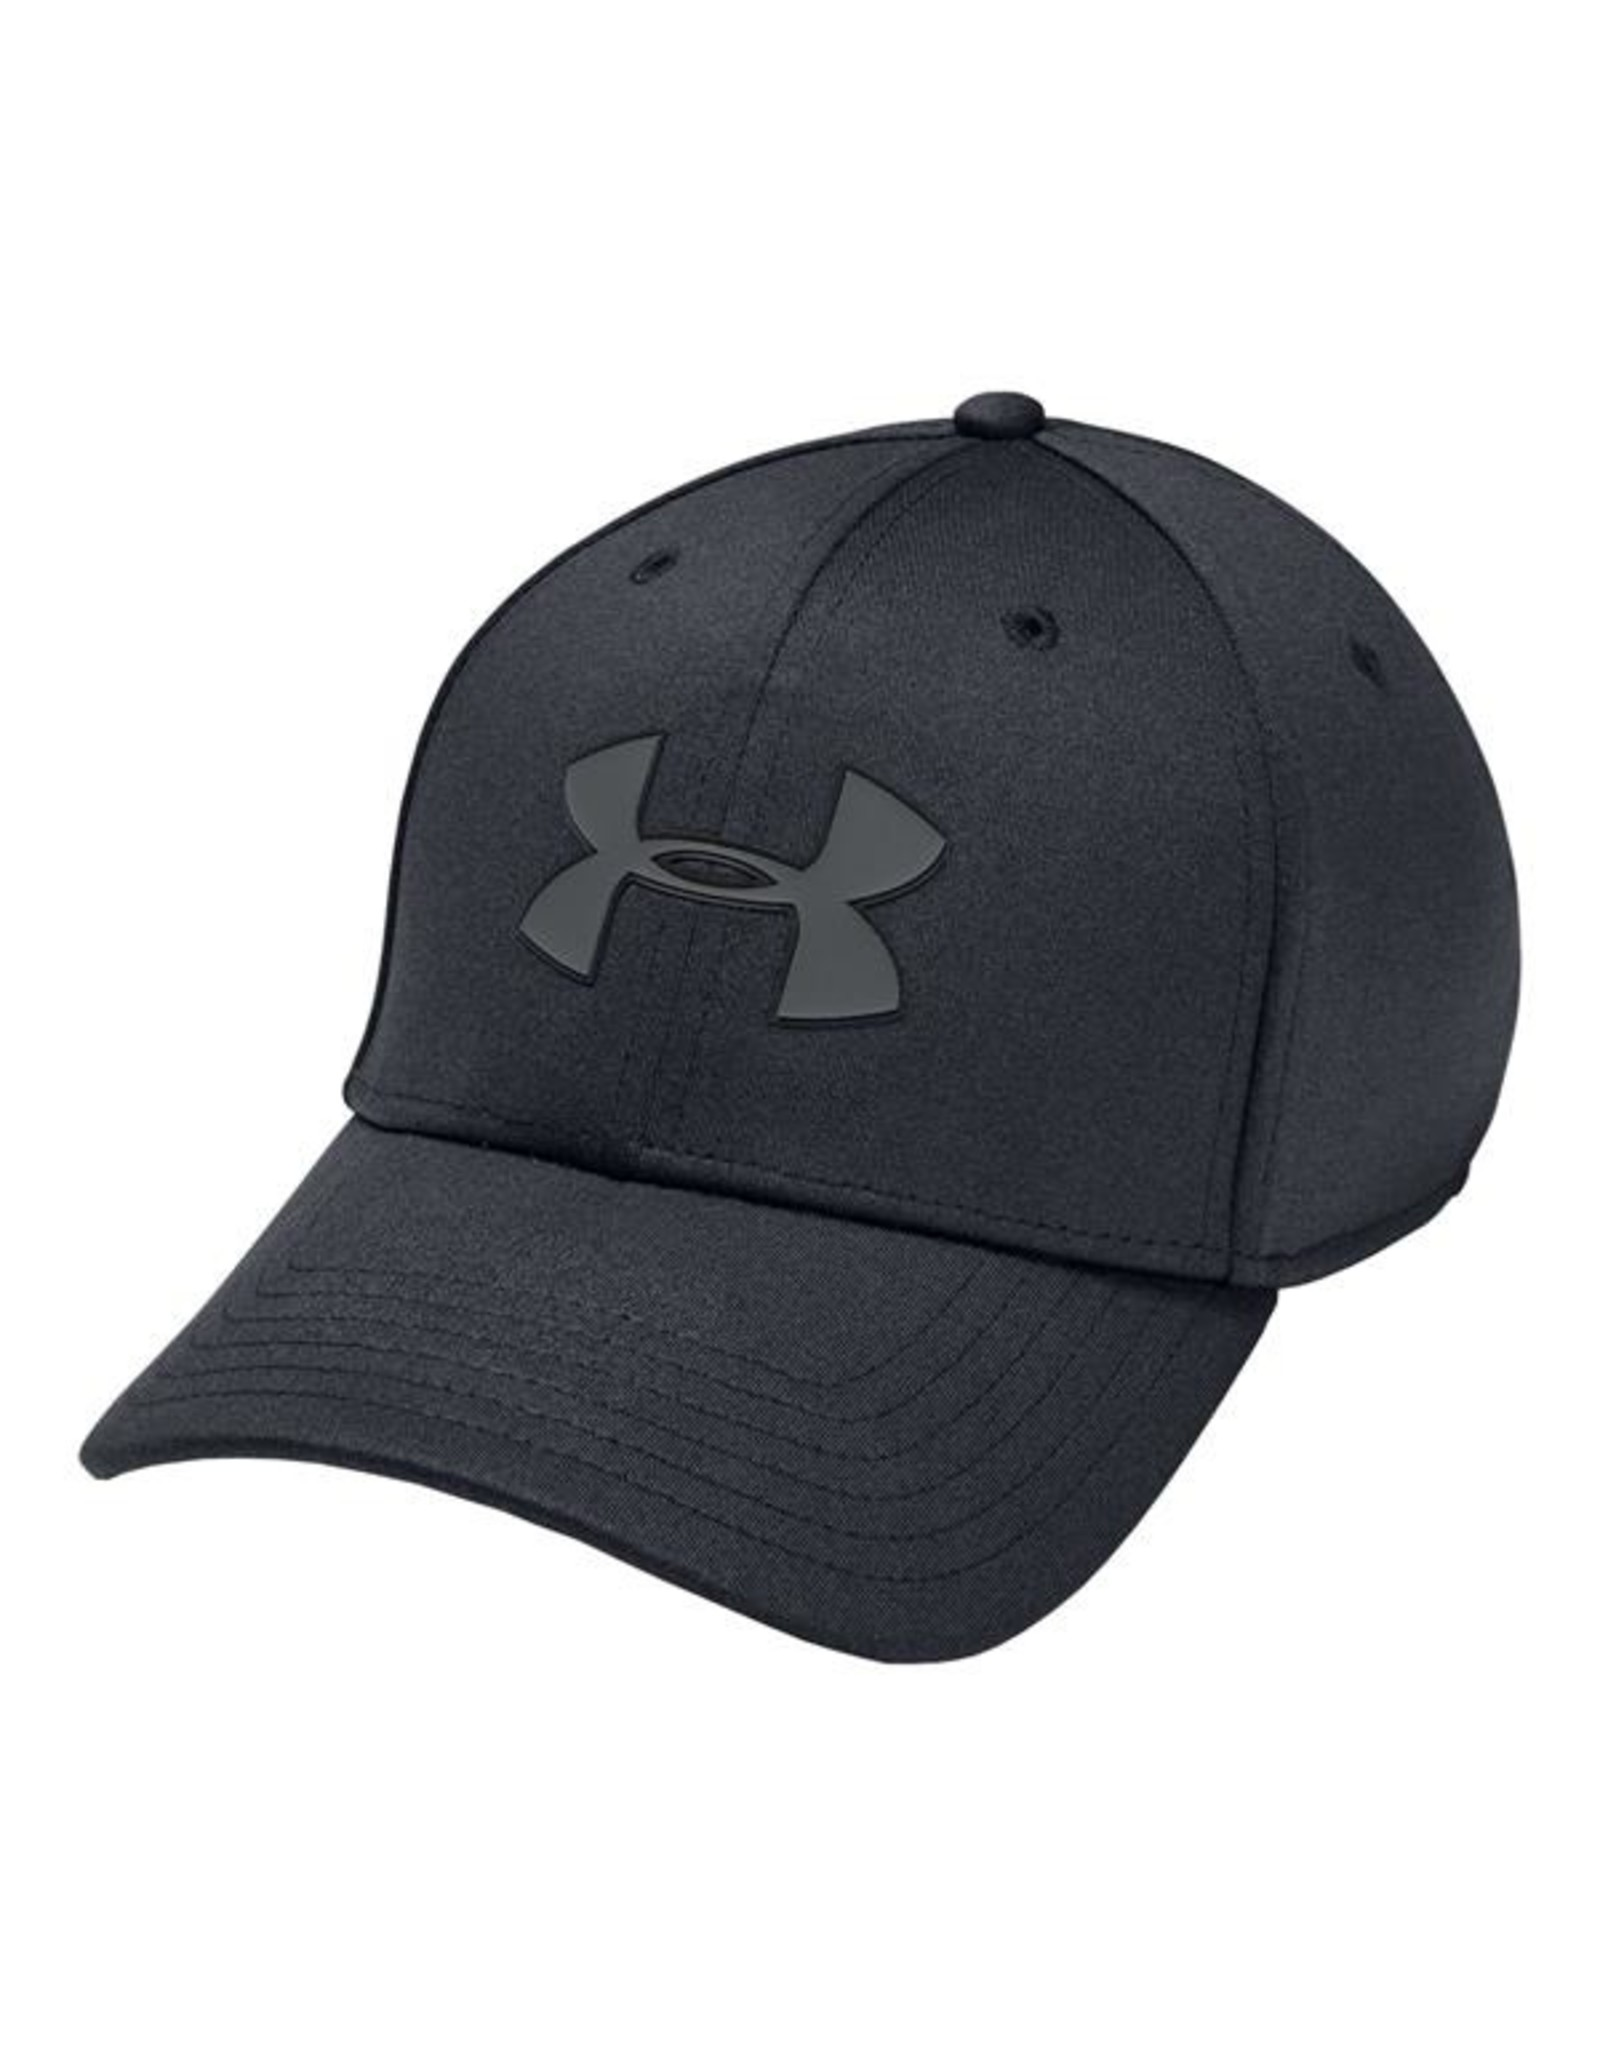 UNDER ARMOUR CASQUETTE UNDER ARMOUR TWIST